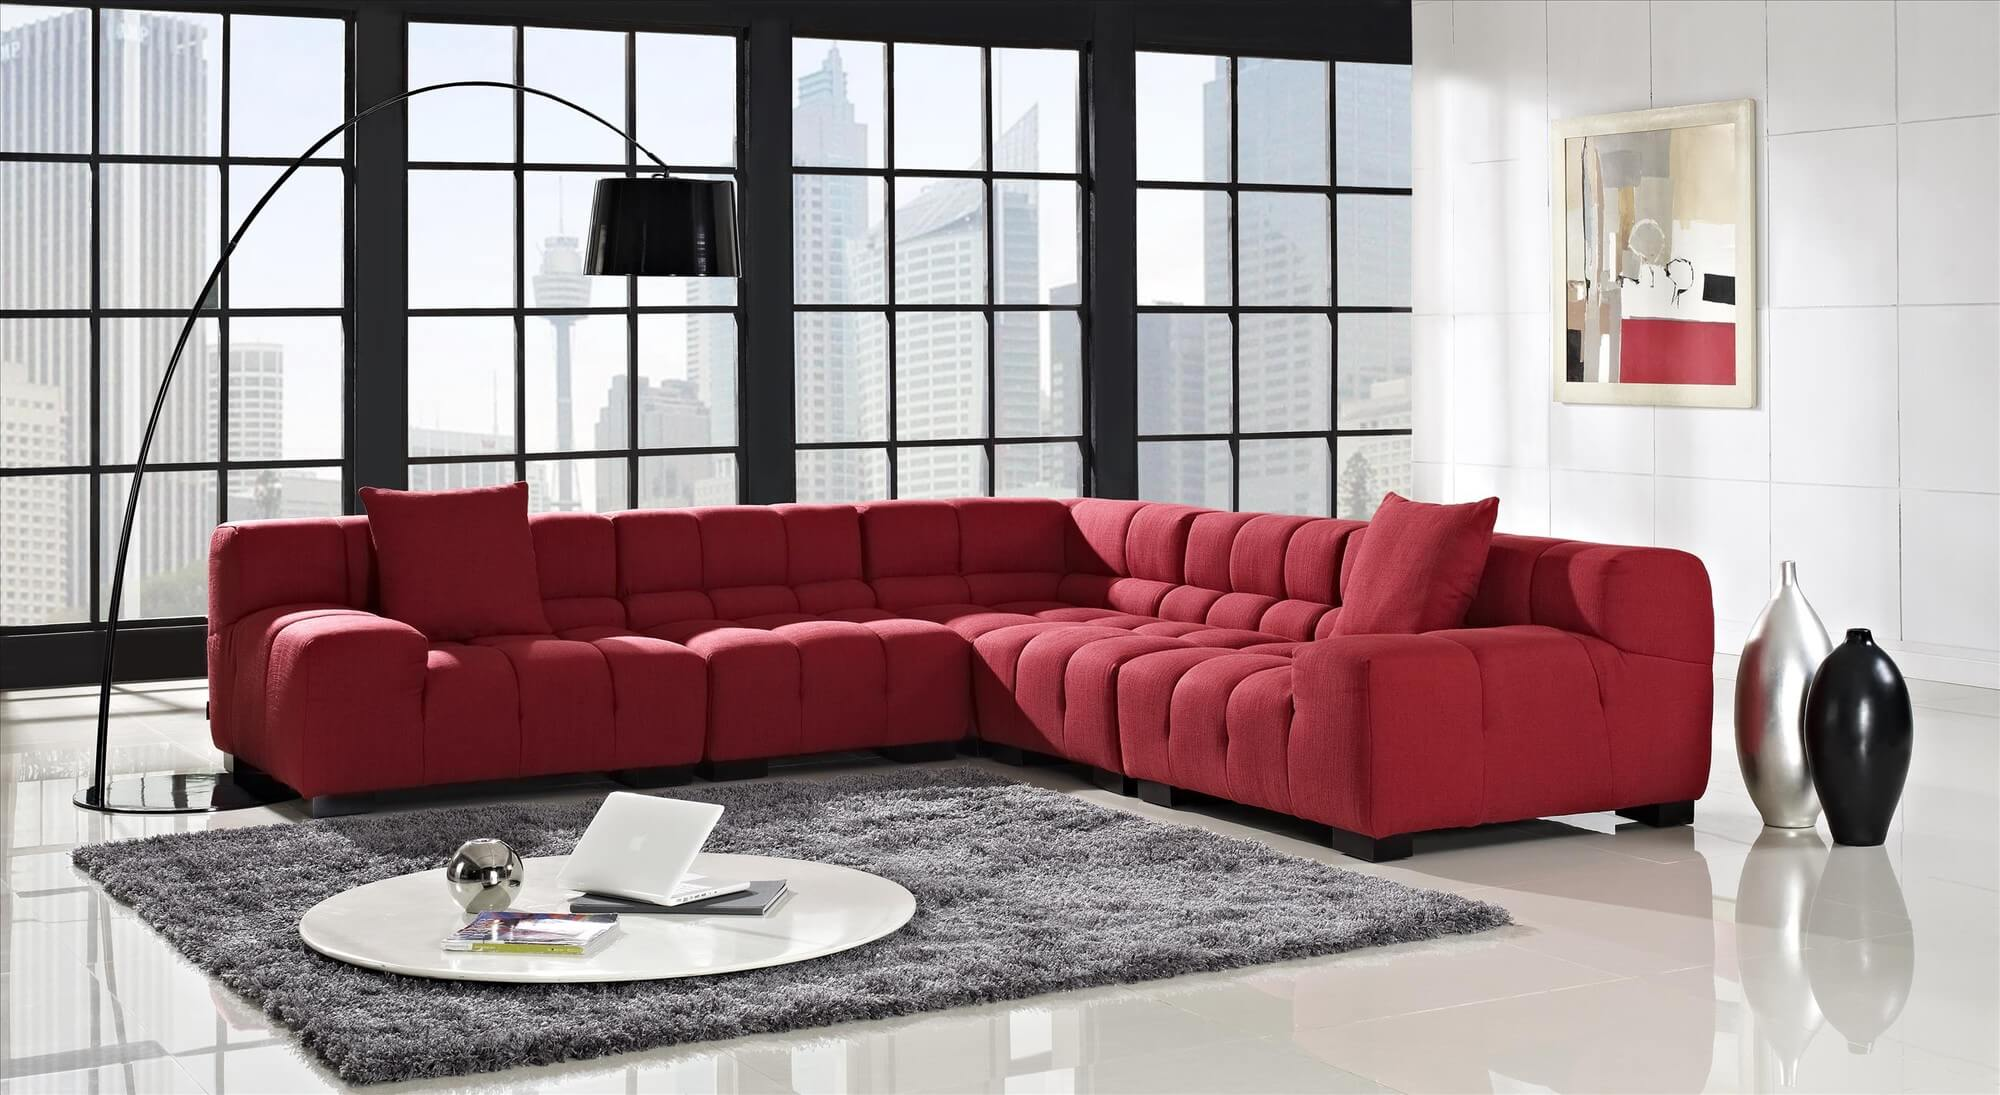 This solid wood frame red woven fabric sectional offers a tufted upholstery pattern. Seating is firm yet comfortable with high density foam.